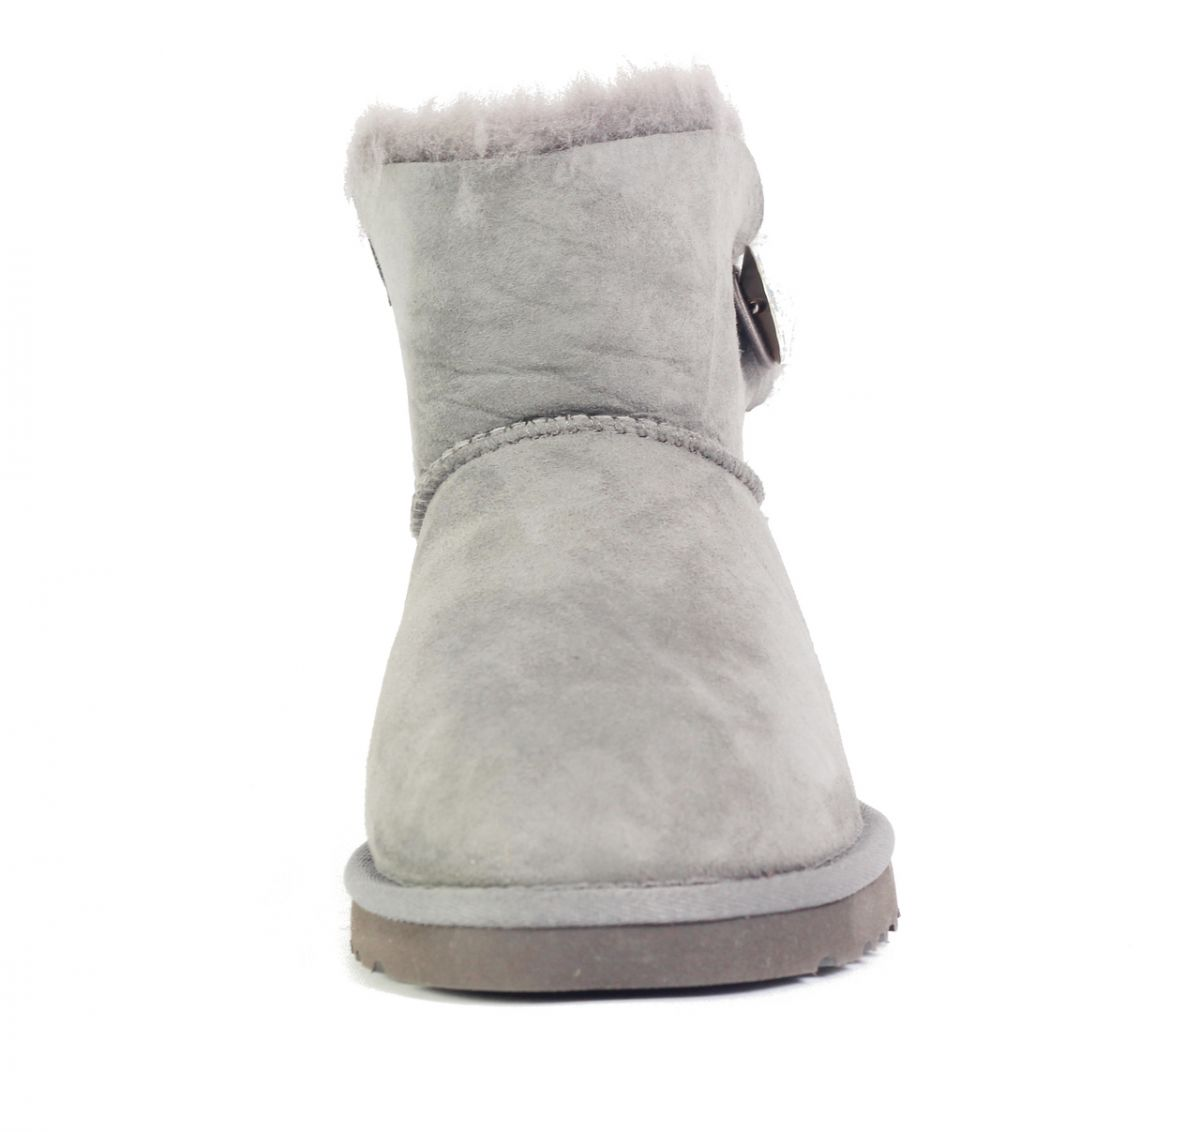 6e4d249fdc4 UGG Australia for Women: Mini Bailey Button Bling Grey Boots Grey